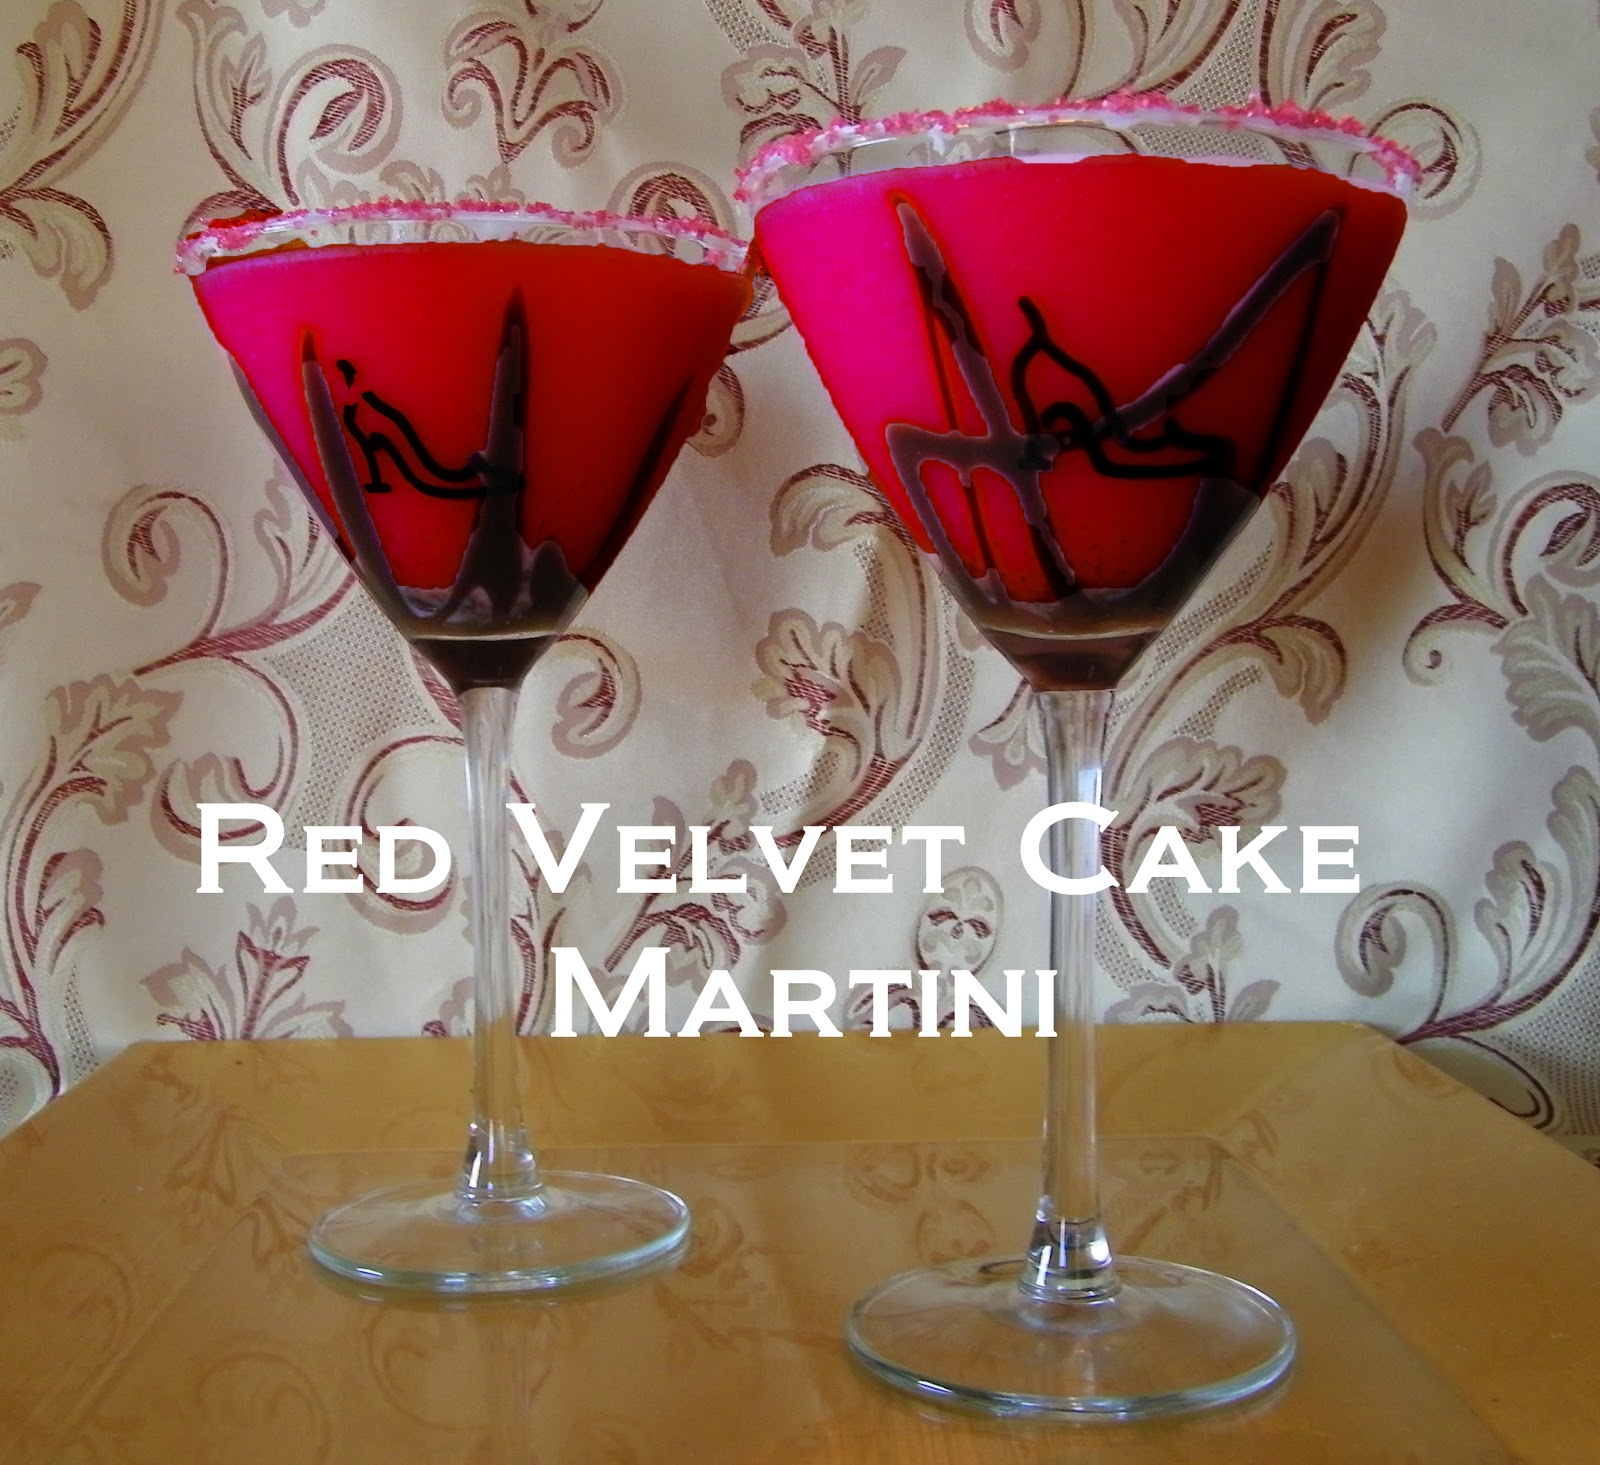 ... Events, & Travel: Fabulous FG Friday Cocktail: Red Velvet Cake Martini